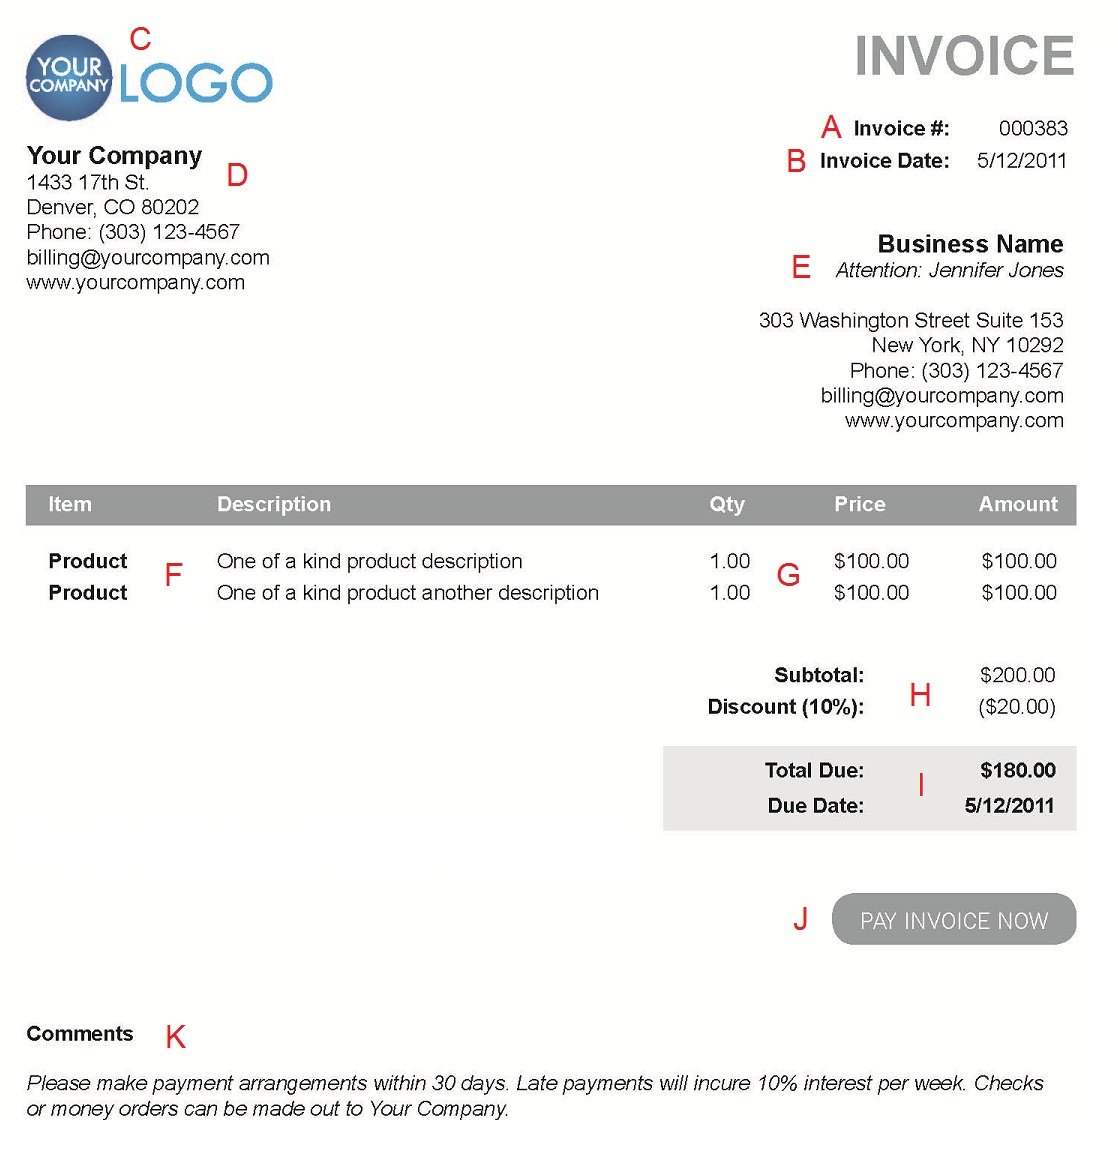 Pigbrotherus  Surprising The  Different Sections Of An Electronic Payment Invoice With Exciting A  With Astonishing Free Invoice Word Template Also Rcti Invoice In Addition Intercompany Invoice And Cattles Invoice Finance As Well As How To Make A Tax Invoice Additionally Dictionary Invoice From Paysimplecom With Pigbrotherus  Exciting The  Different Sections Of An Electronic Payment Invoice With Astonishing A  And Surprising Free Invoice Word Template Also Rcti Invoice In Addition Intercompany Invoice From Paysimplecom